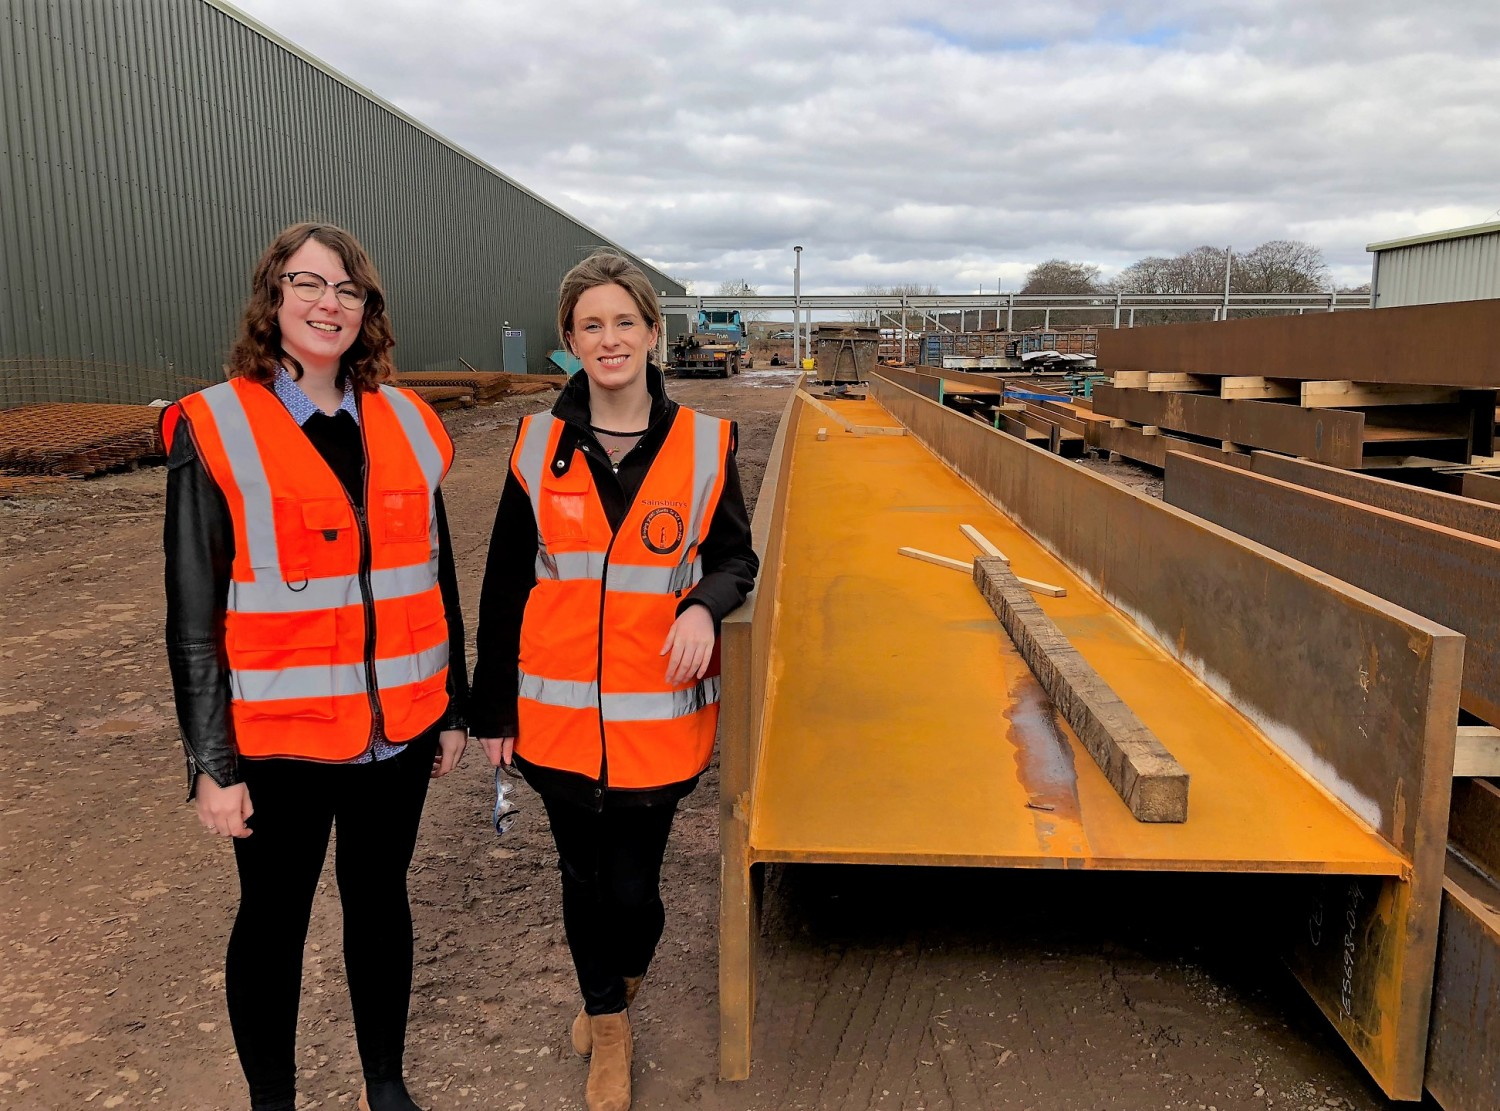 Jess and Maggs, Evolve Consulting Engineers